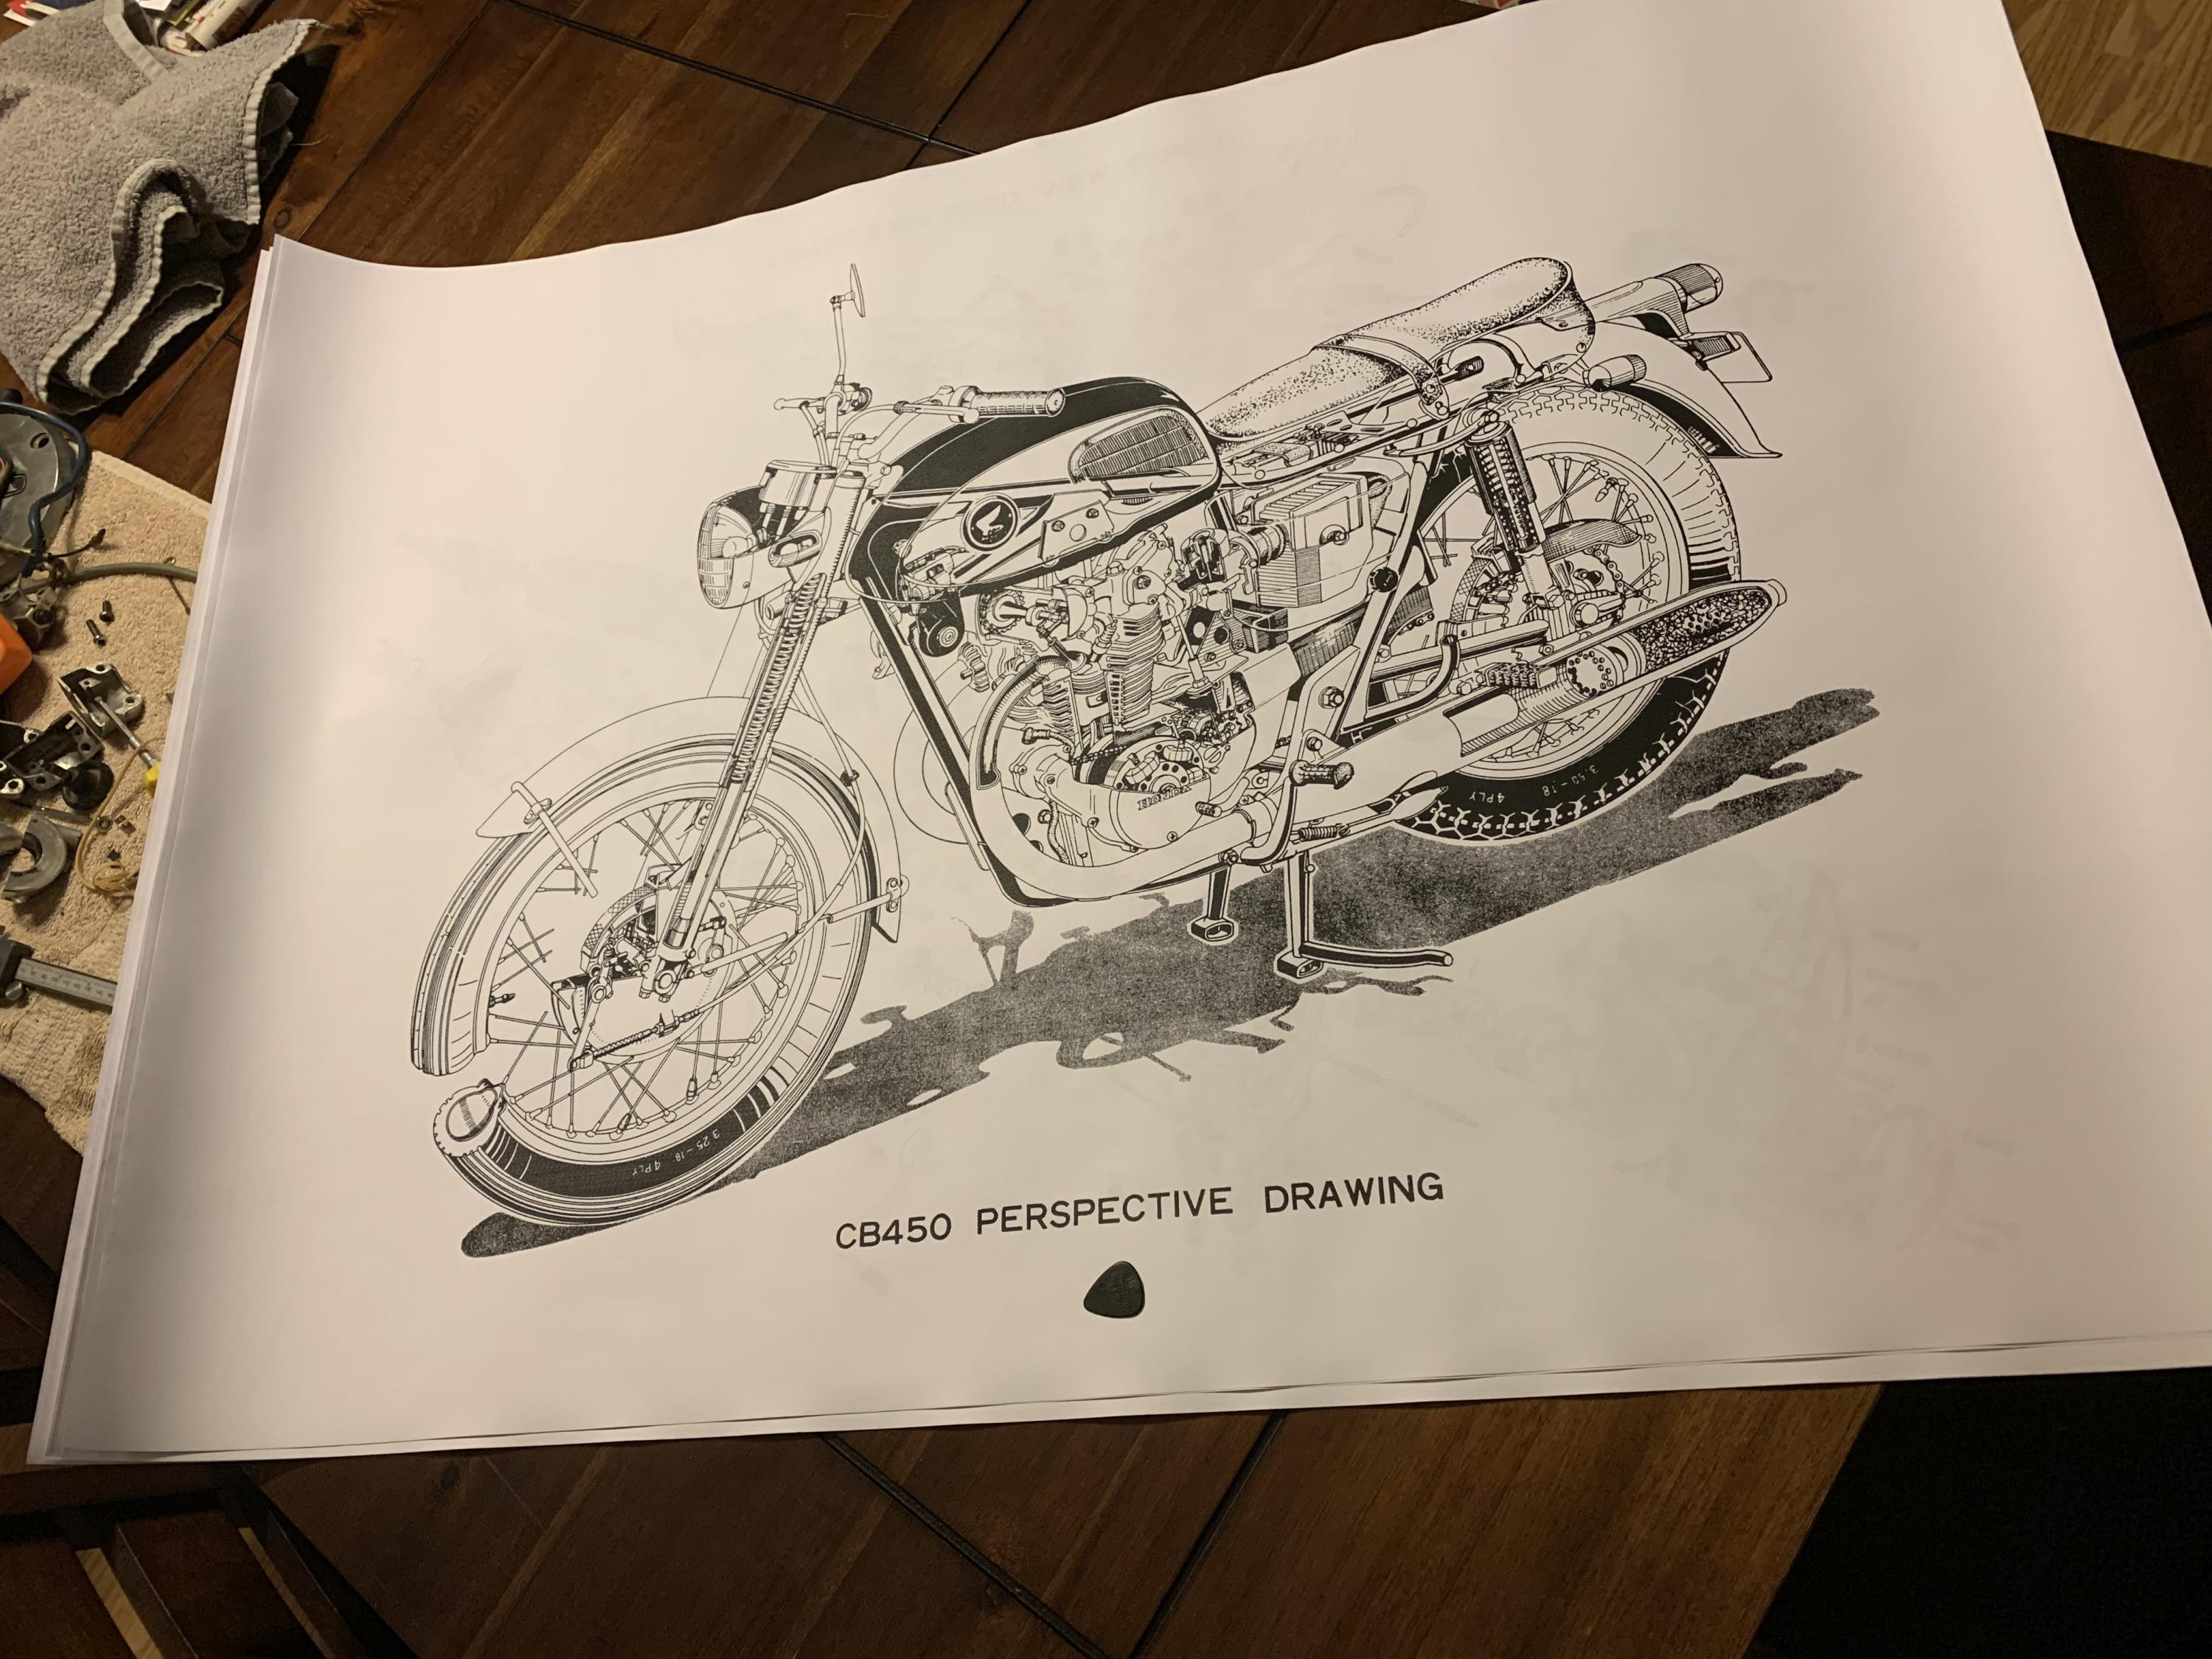 Cb450 perspective drawing poster-img_3215.jpg